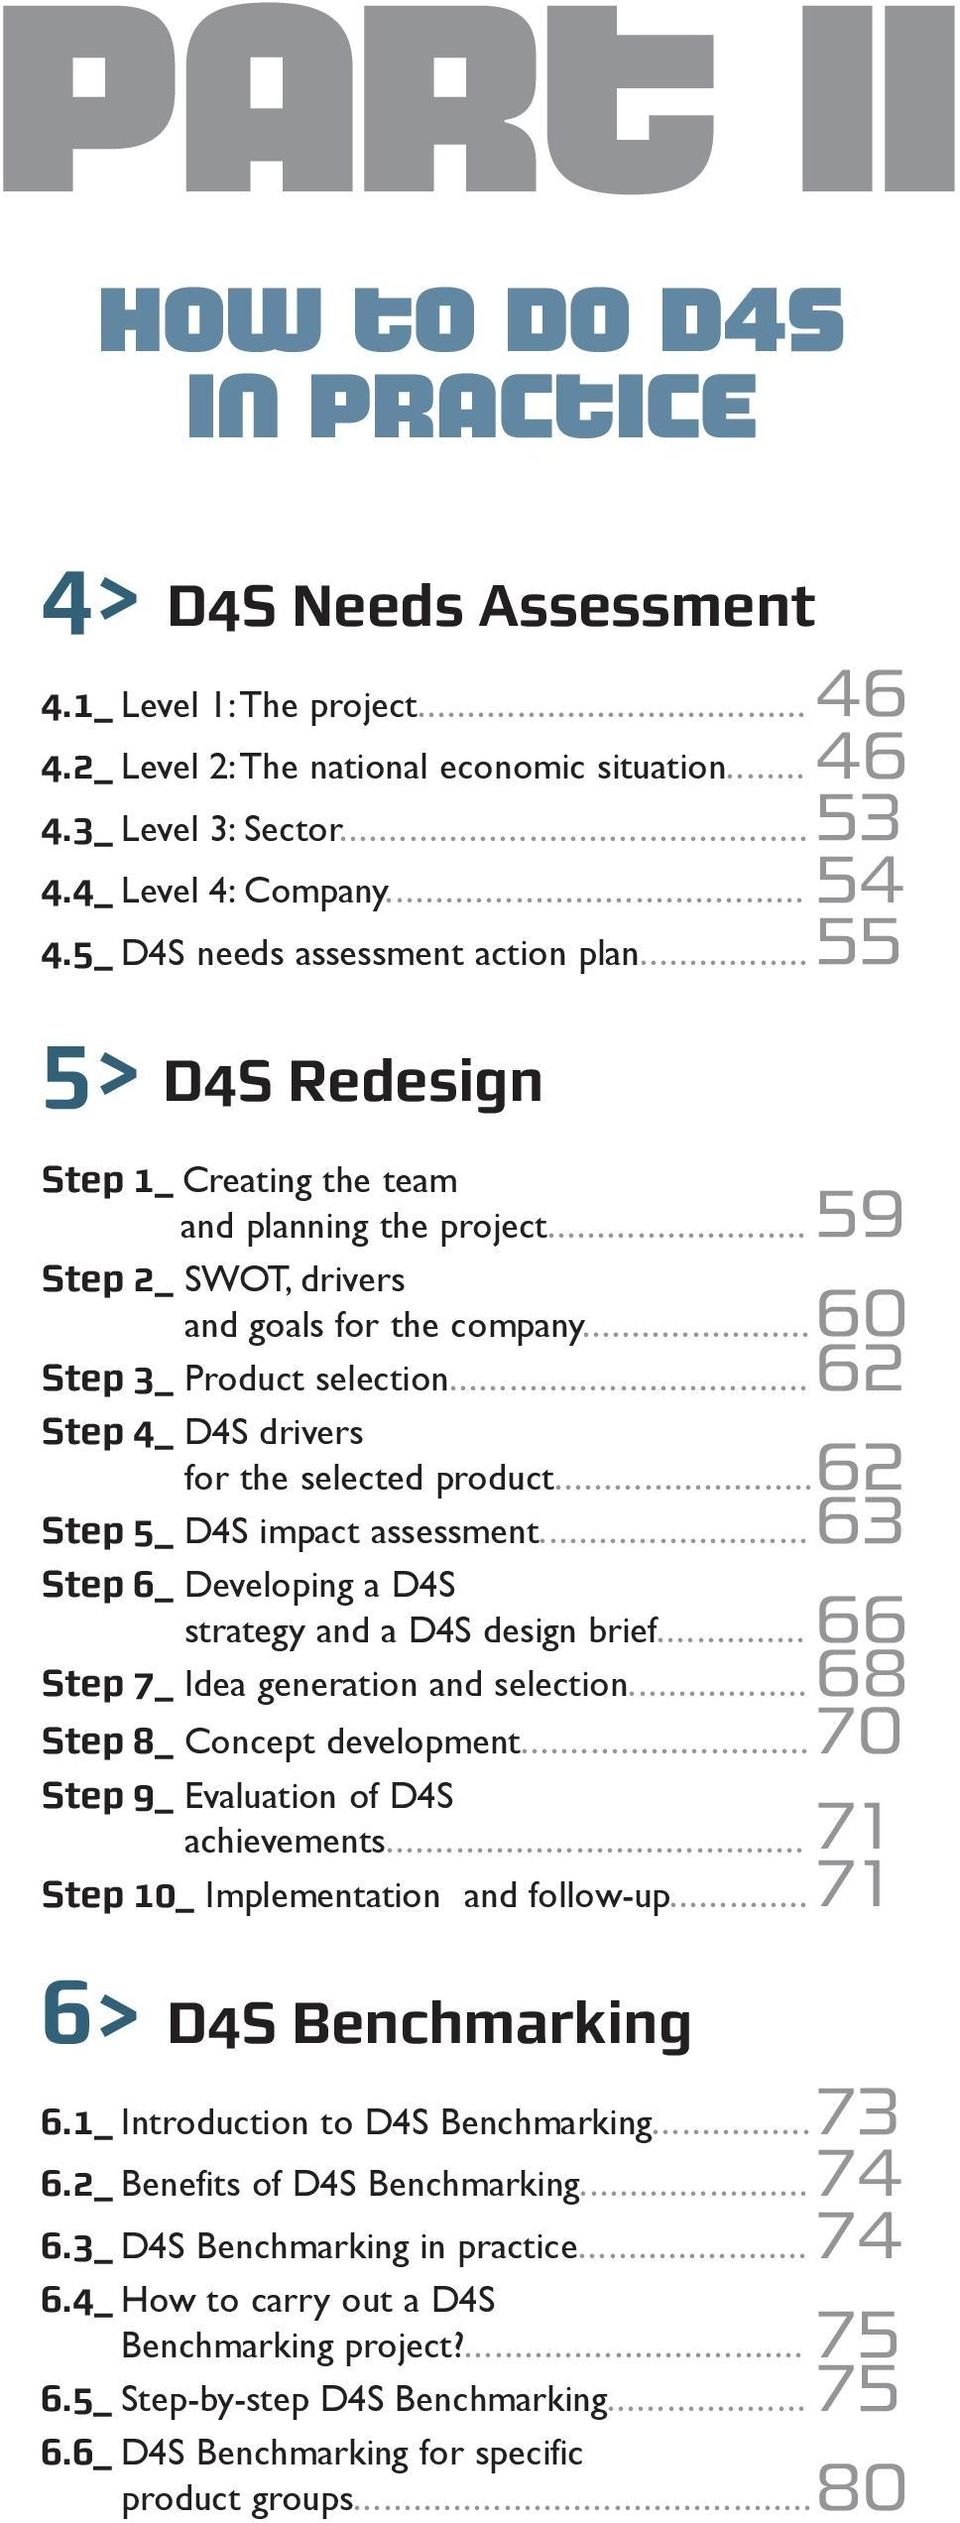 .. Step 4_ D4S drivers for the selected product... Step 5_ D4S impact assessment... Step 6_ Developing a D4S strategy and a D4S design brief... Step 7_ Idea generation and selection.